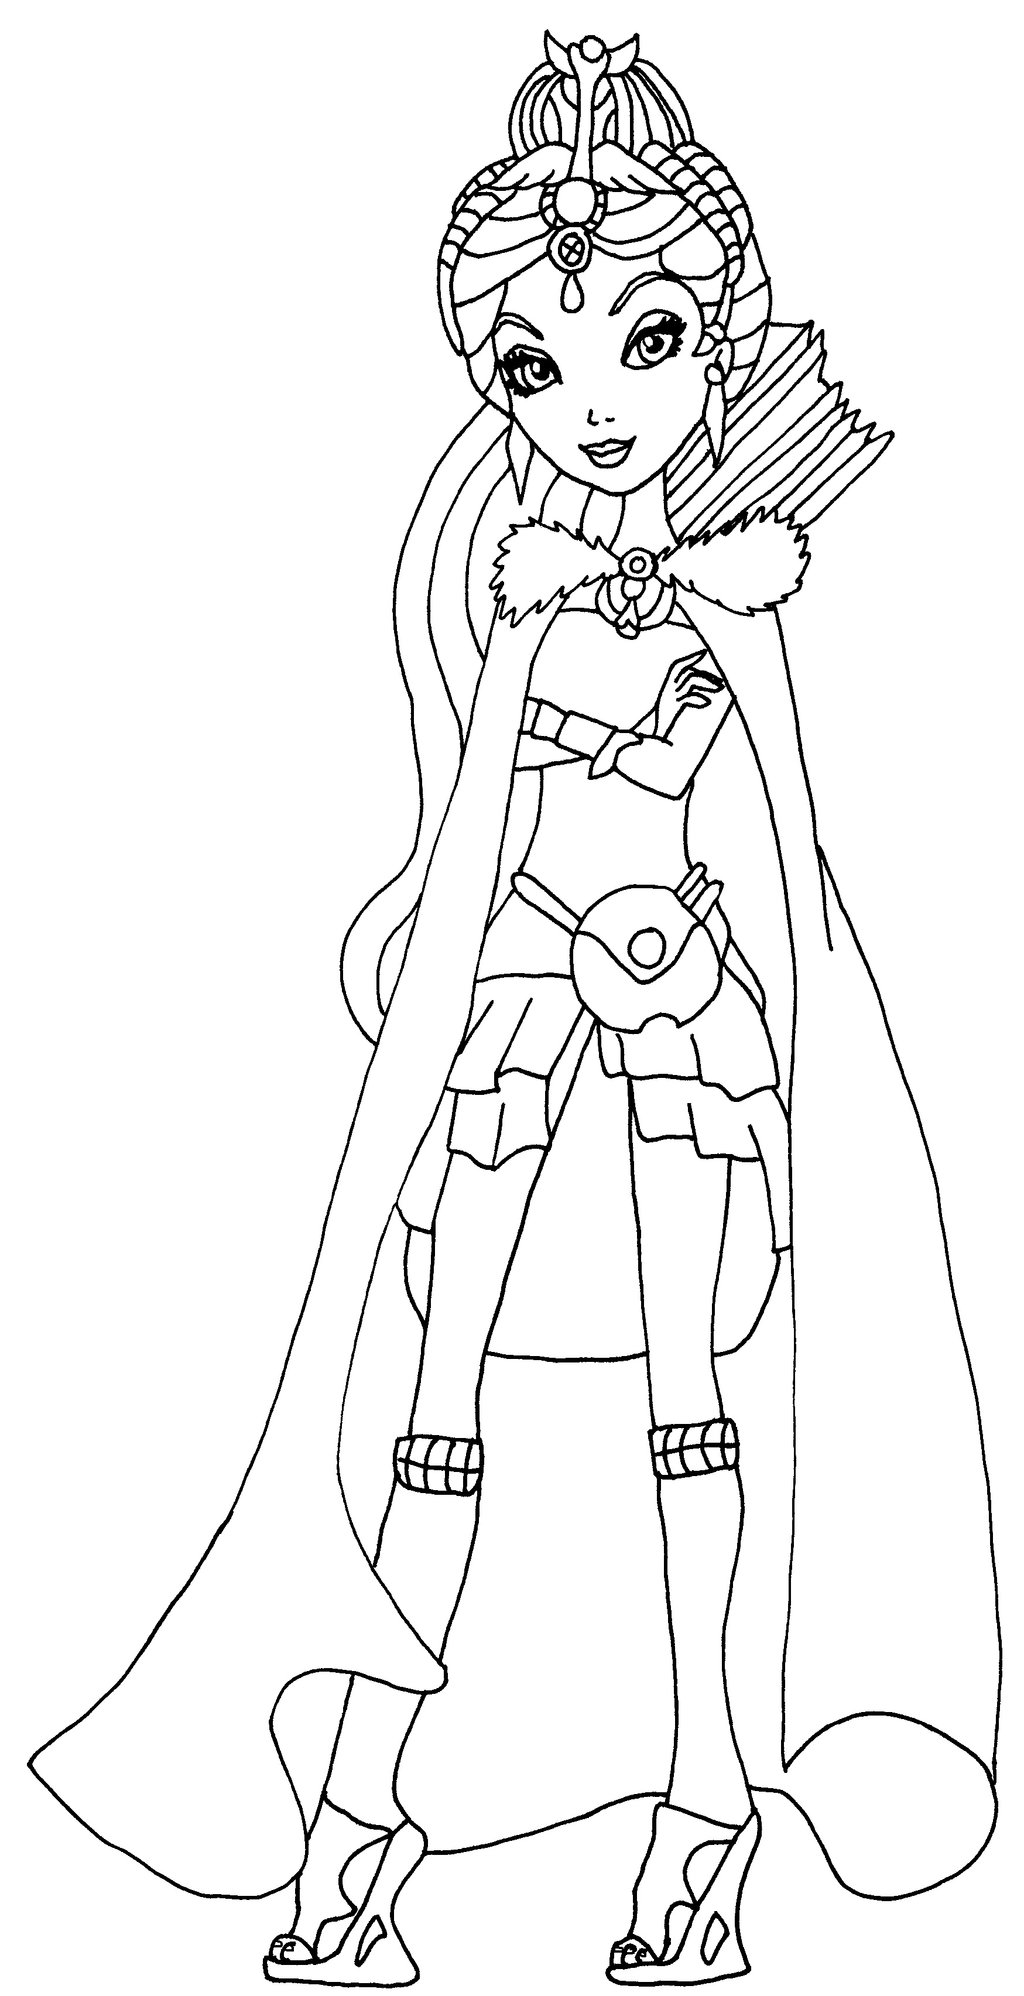 coloring ever after high ever after high lovely raven queen coloring pages after ever high coloring